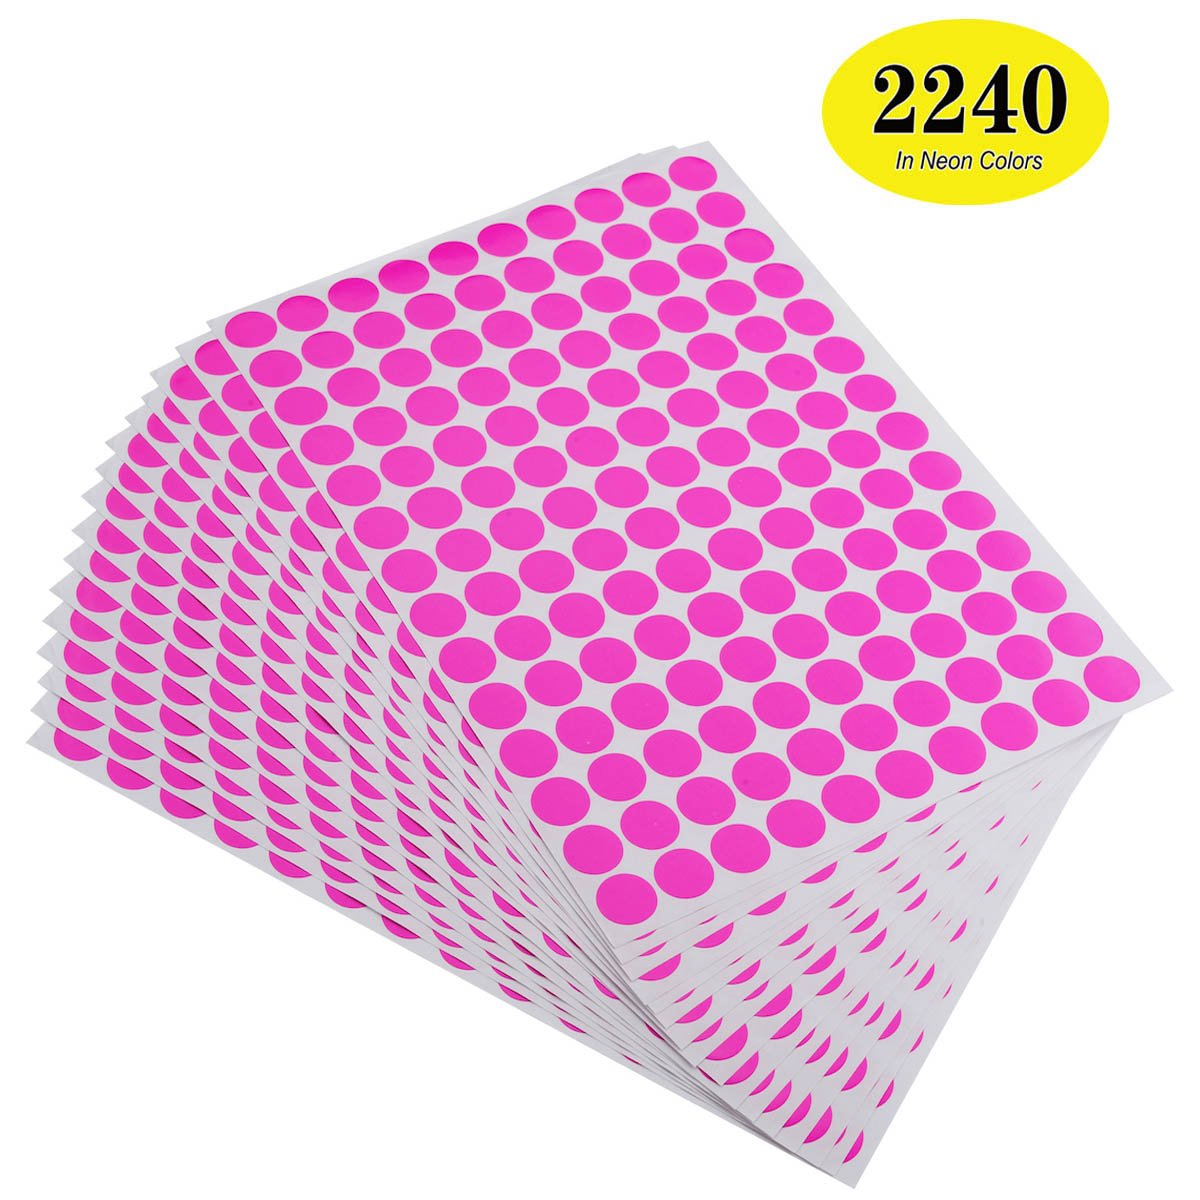 "ONUPGO Pack of 2240 Round Color Coding Labels Circle Dot Stickers, 3/4"" Fluorescent Dot Labels Sticker, Bright Neon Colors Label (Neon - Pink)"